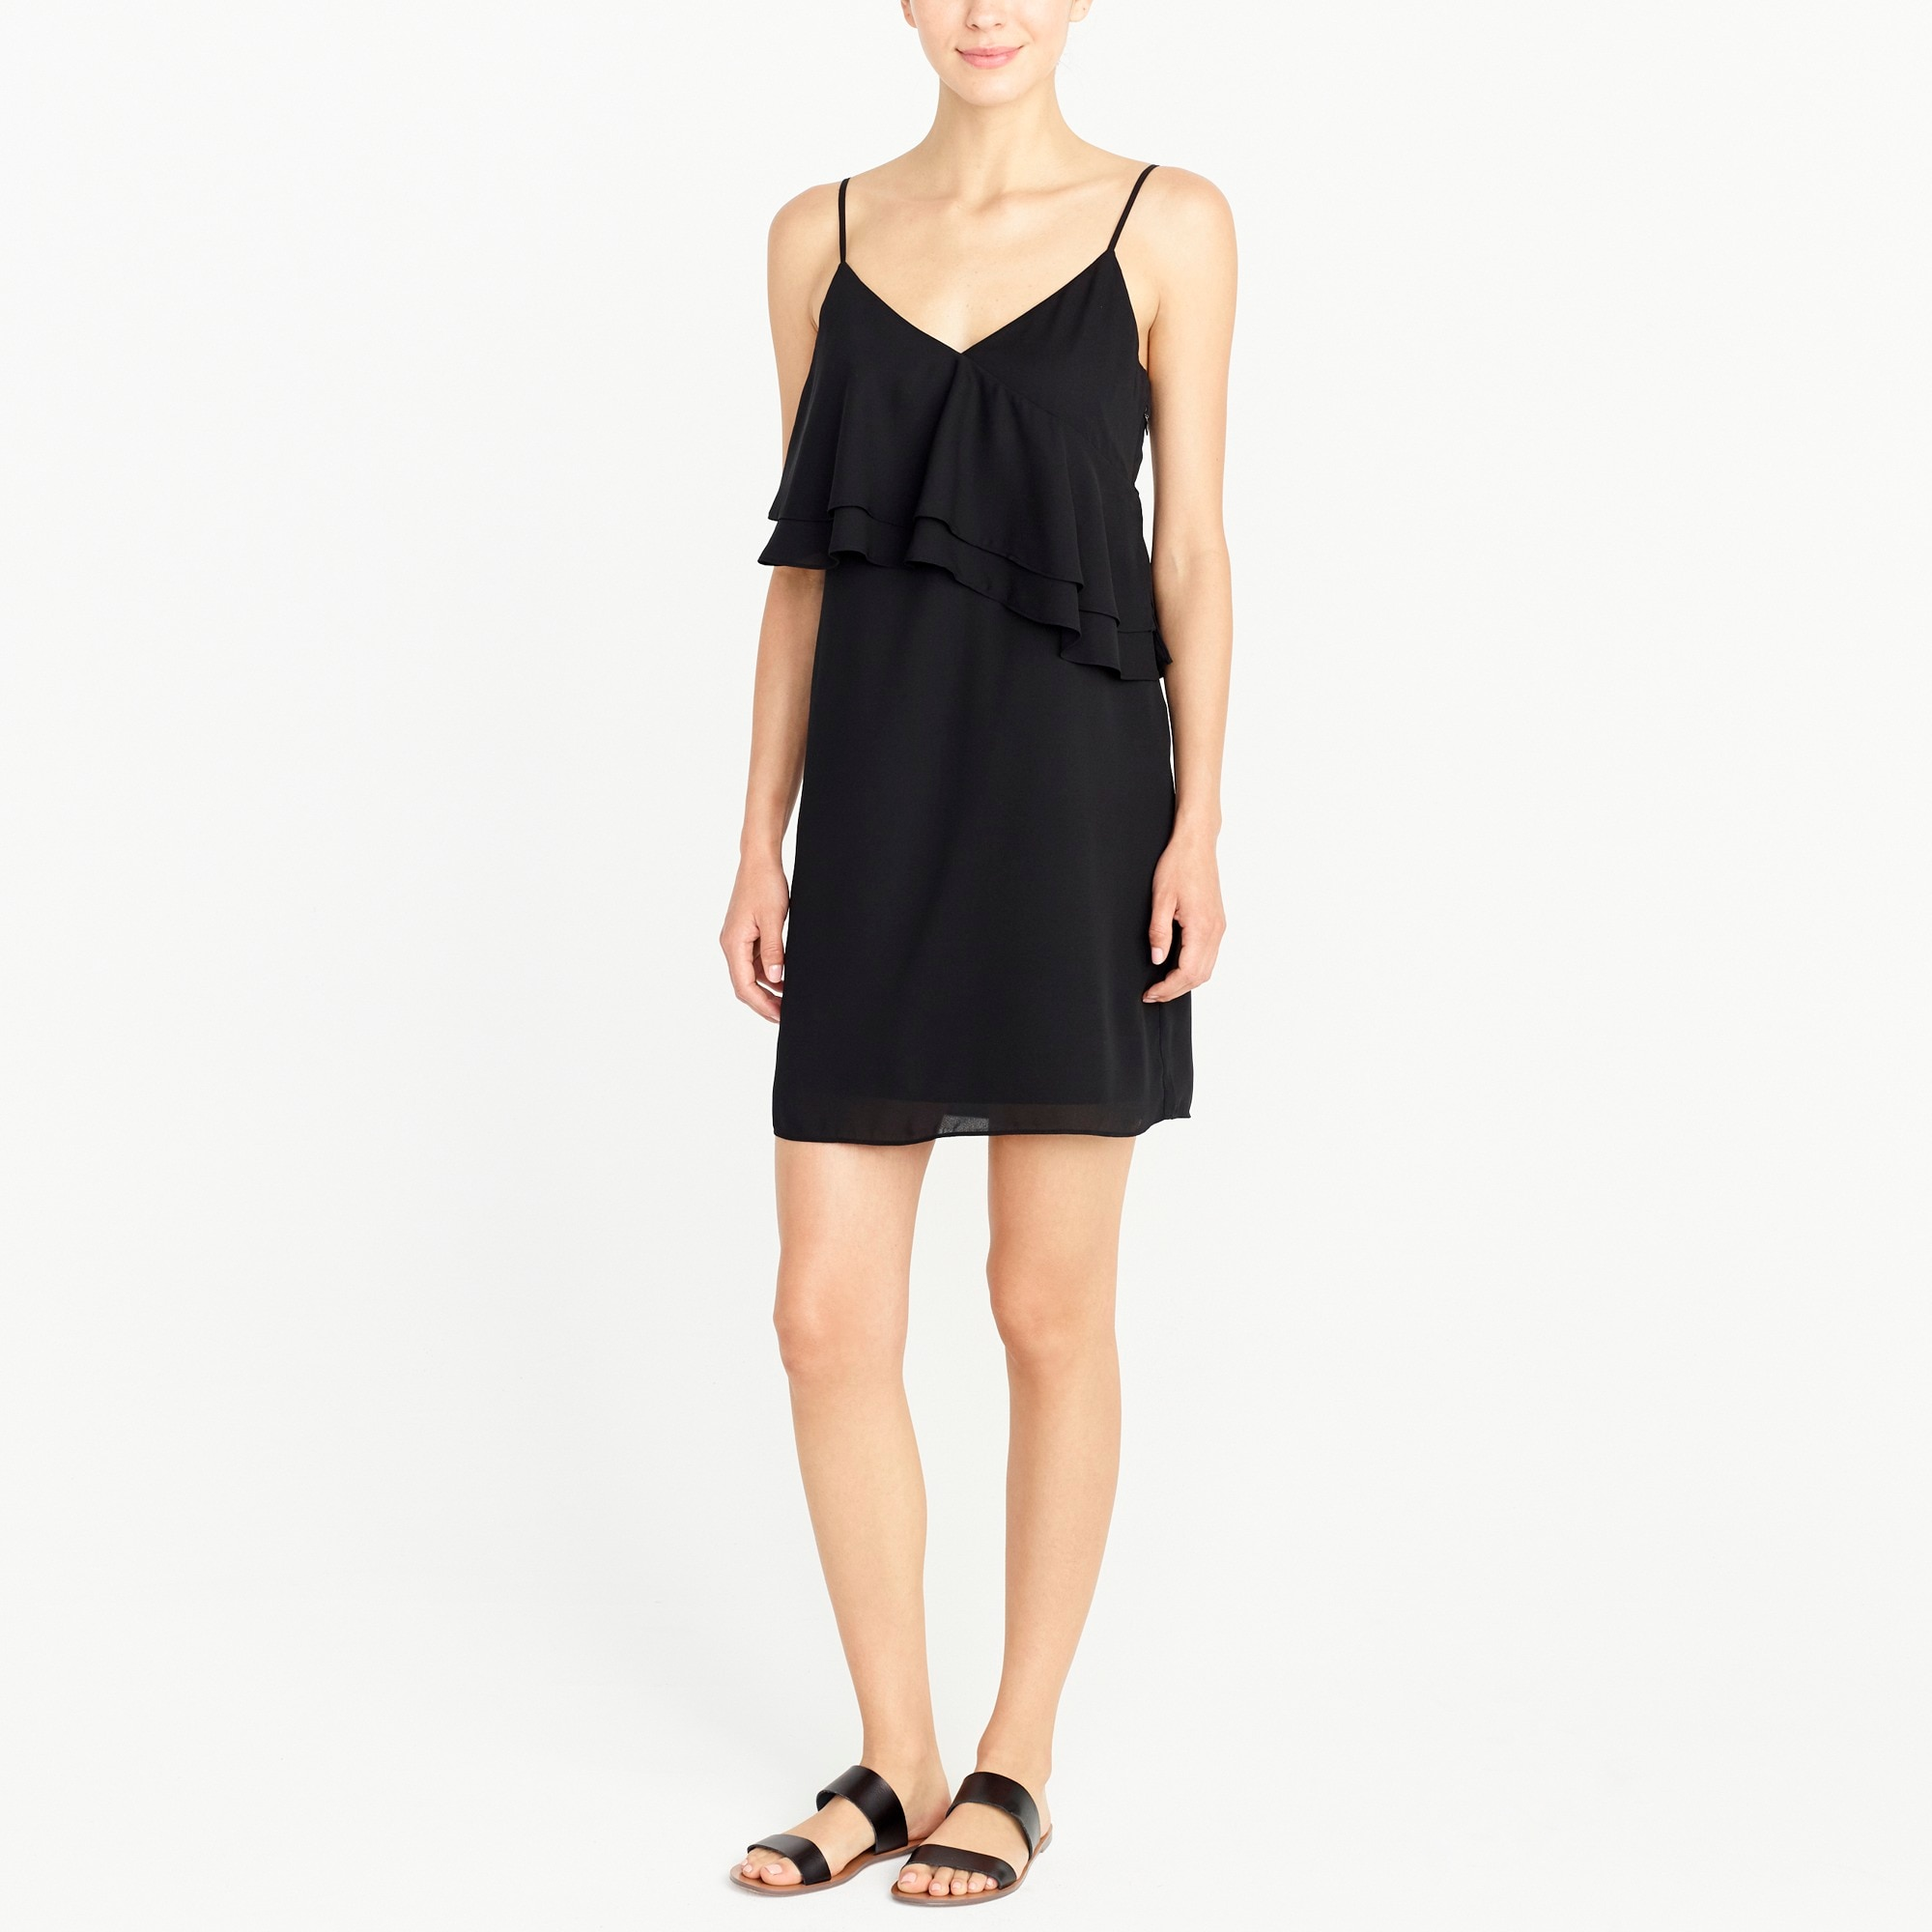 Image 1 for Ruffle-front cami dress